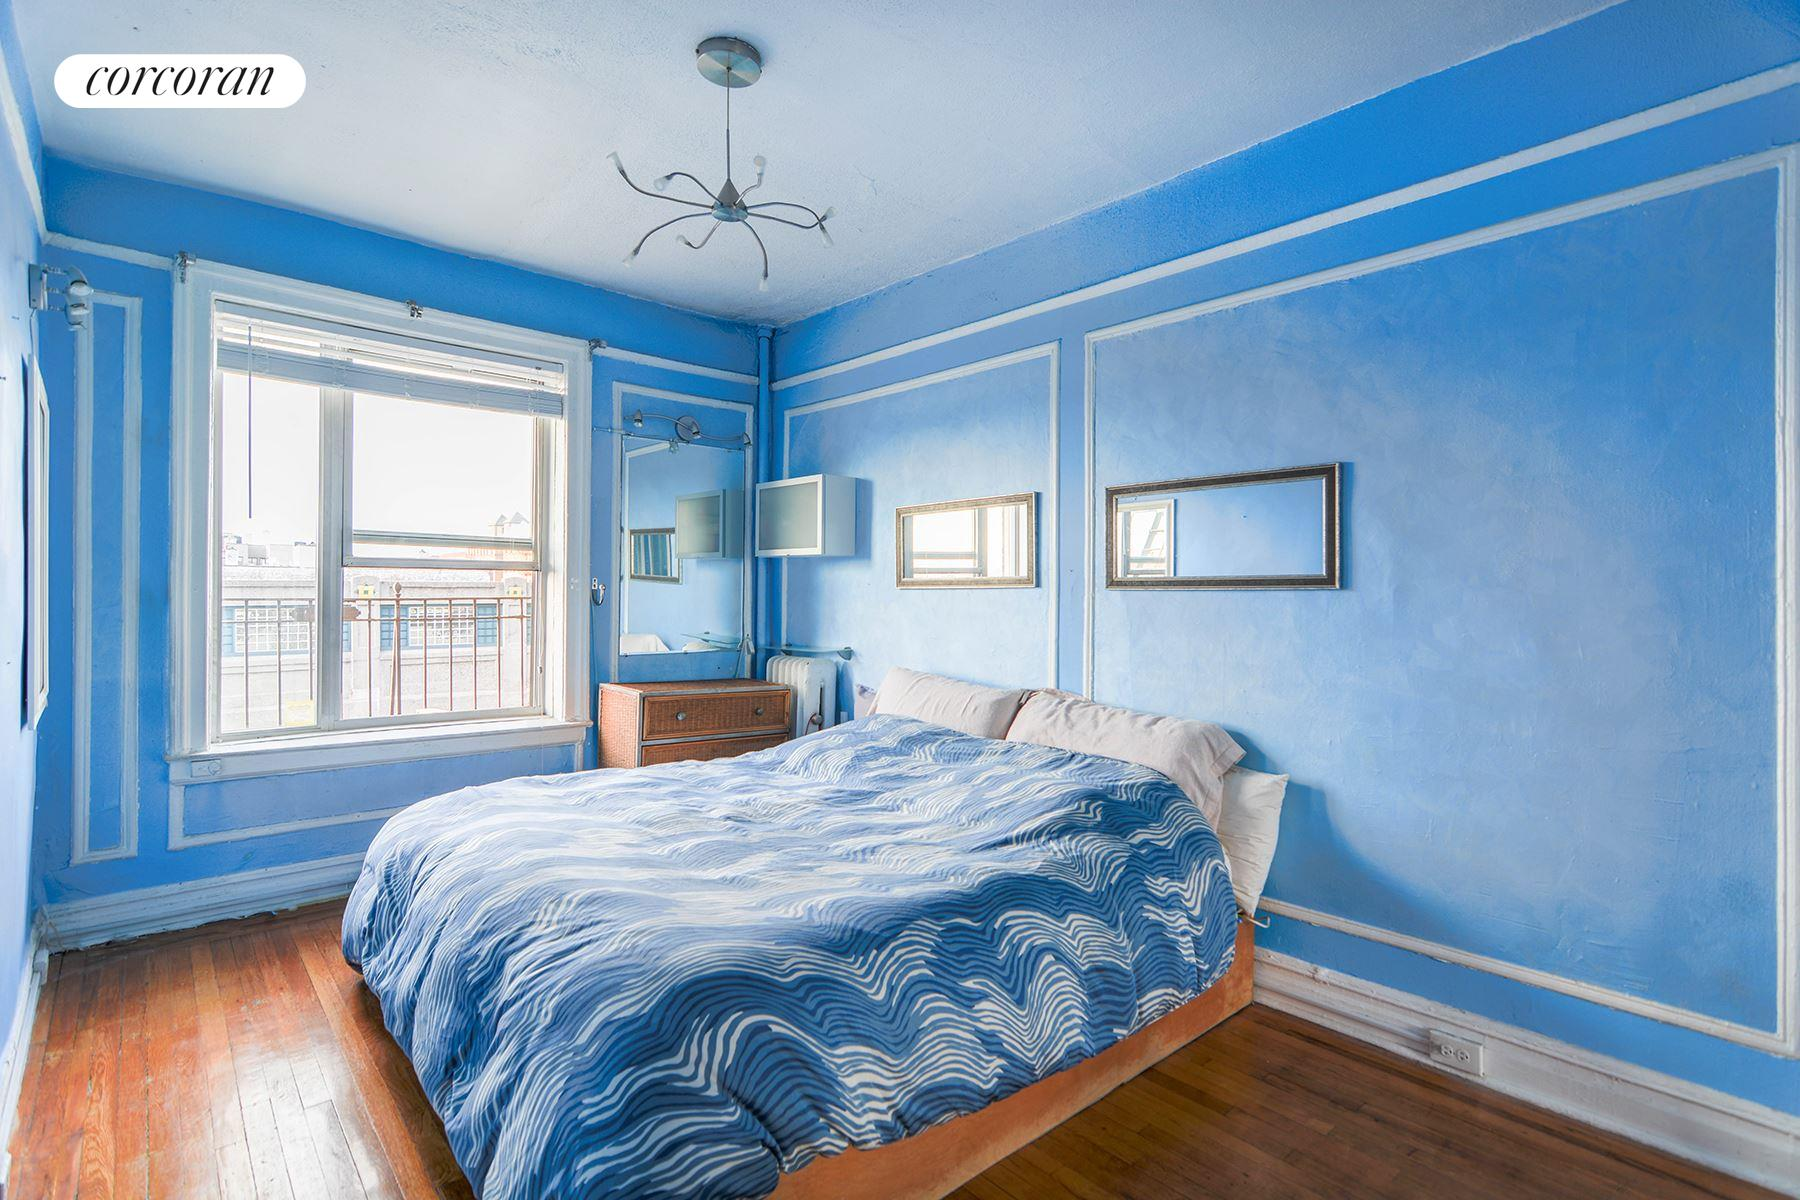 Corcoran, 45-08 40th Street, Apt. B42, Sunnyside Real Estate, Queens ...